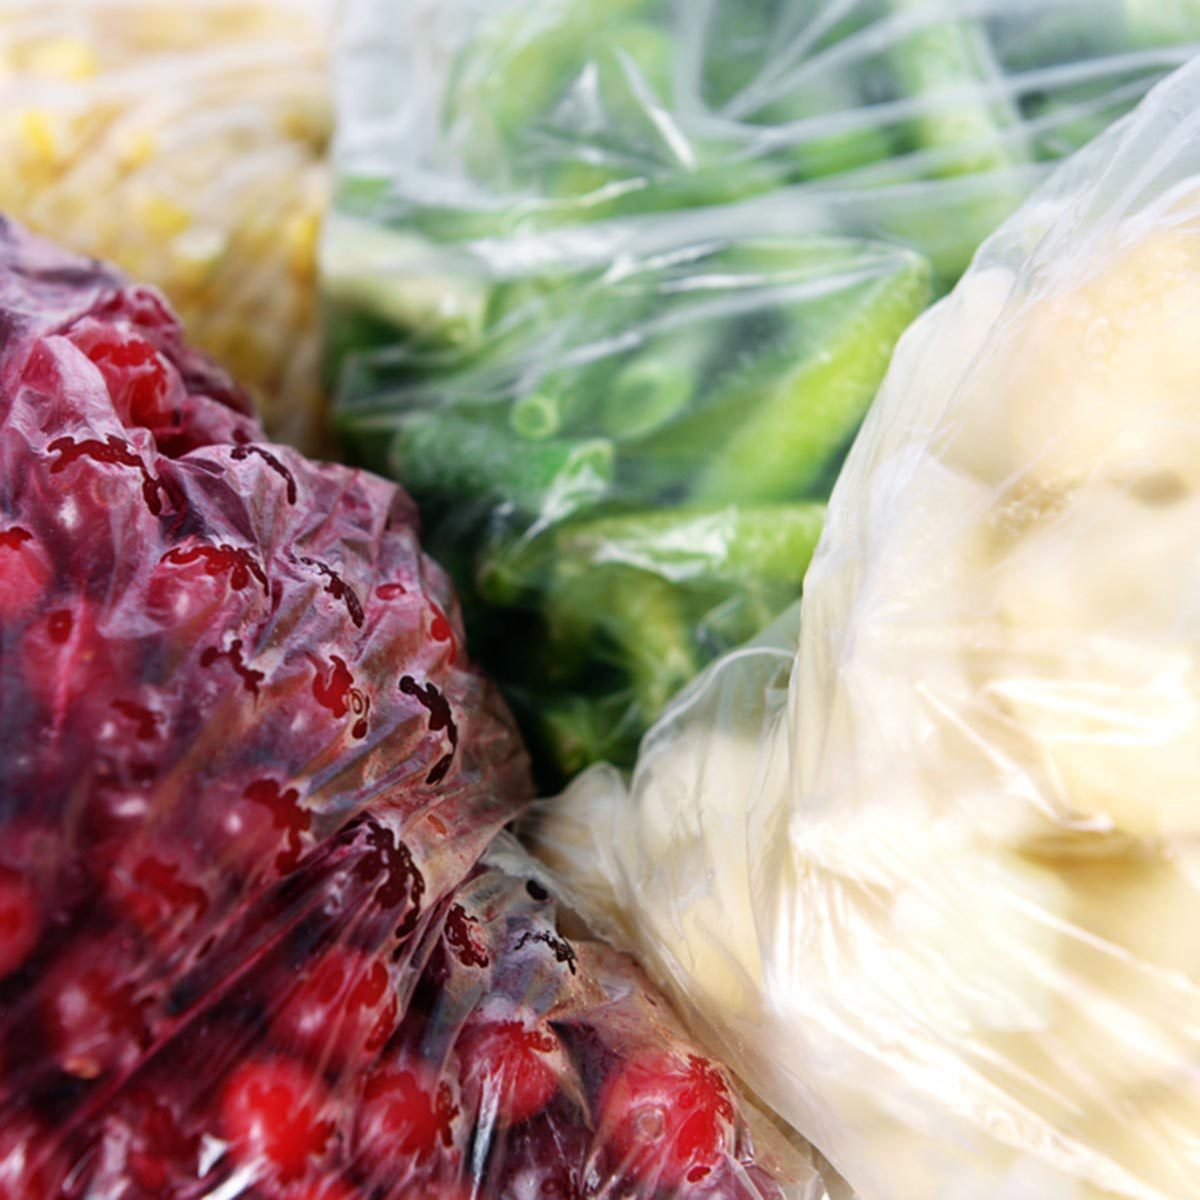 Frozen berries and vegetables in bags close up; Shutterstock ID 284295449